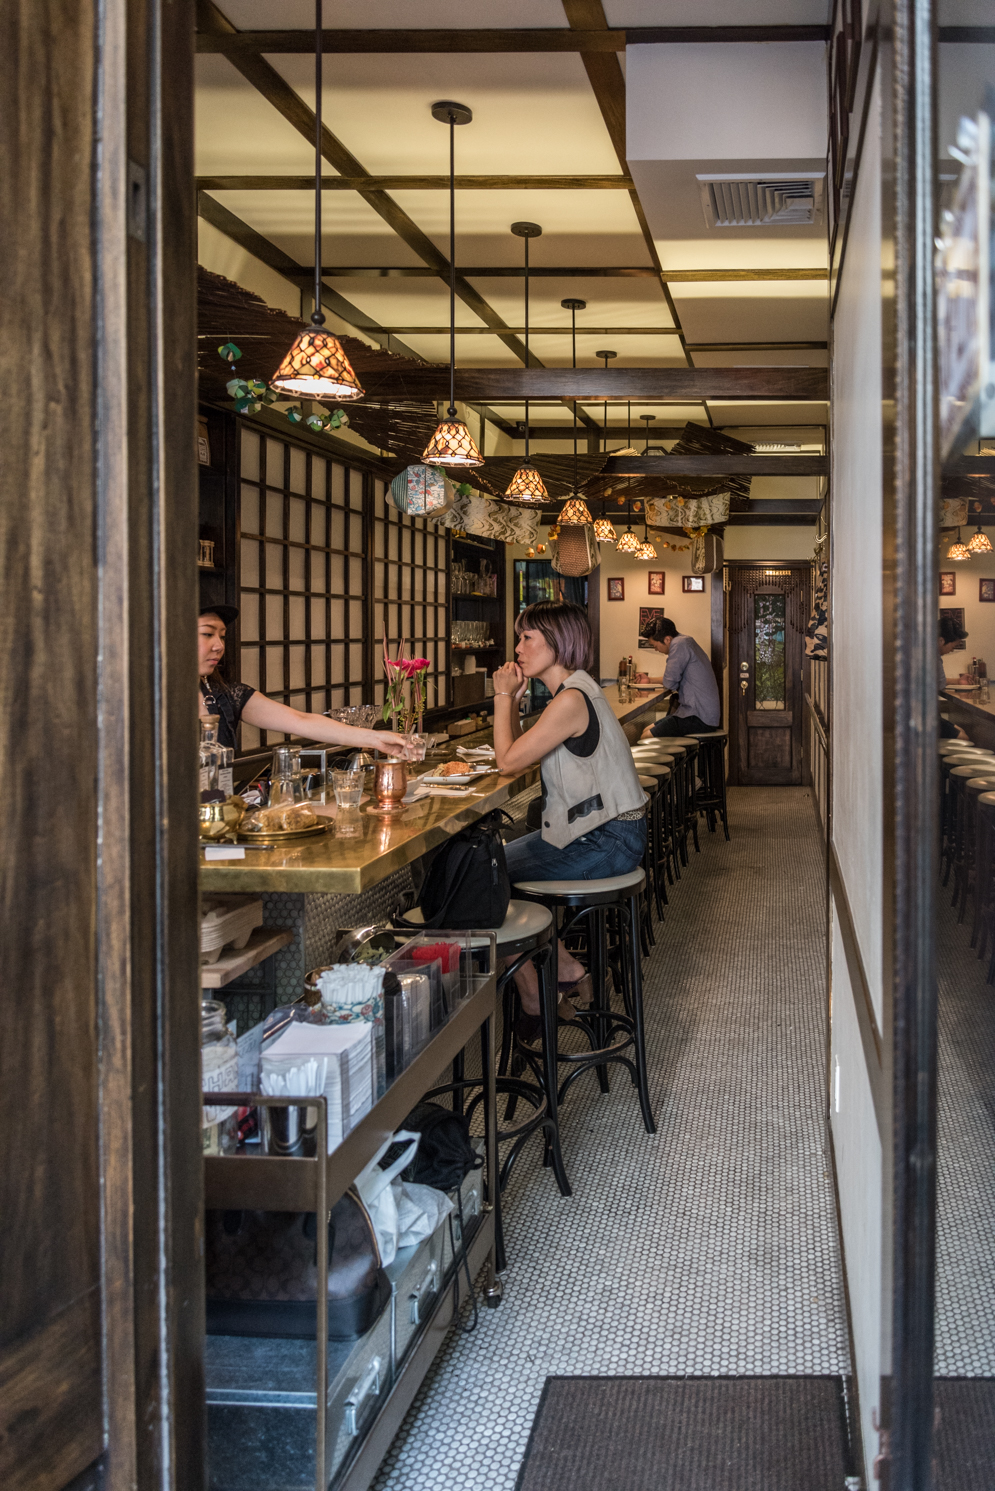 Hi Collar Coffee Bar Japanese East Village New York City Photo Credit rockmamanyc1.jpg